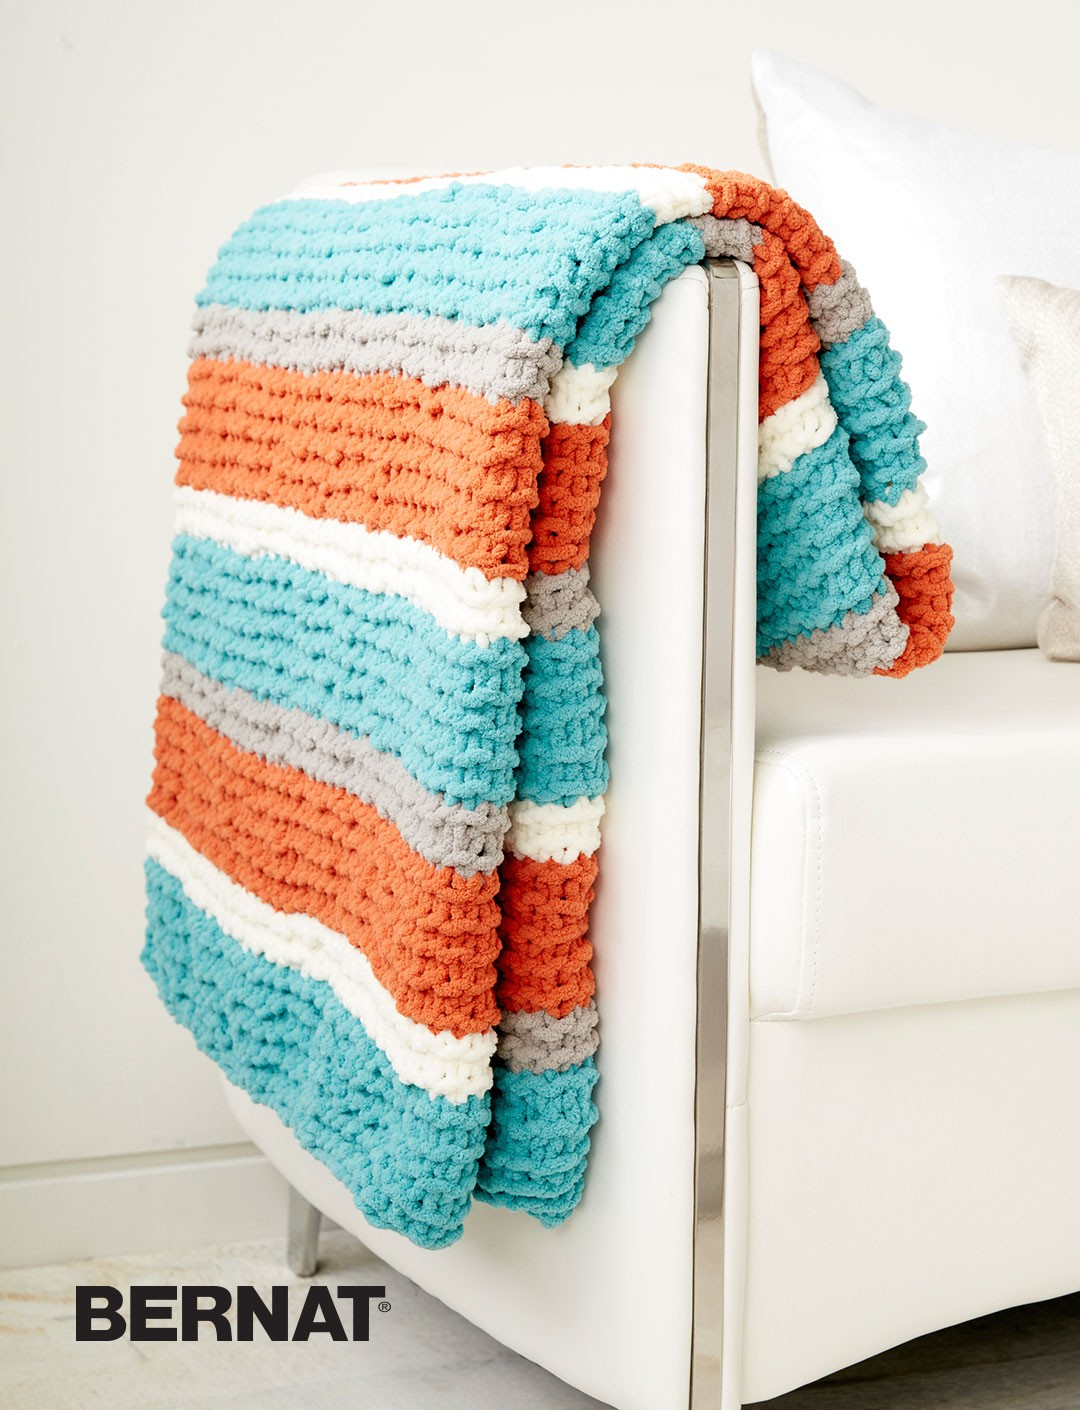 Bernat Knitting Patterns Free : Bernat Get Fresh Throw, Knit Pattern Yarnspirations